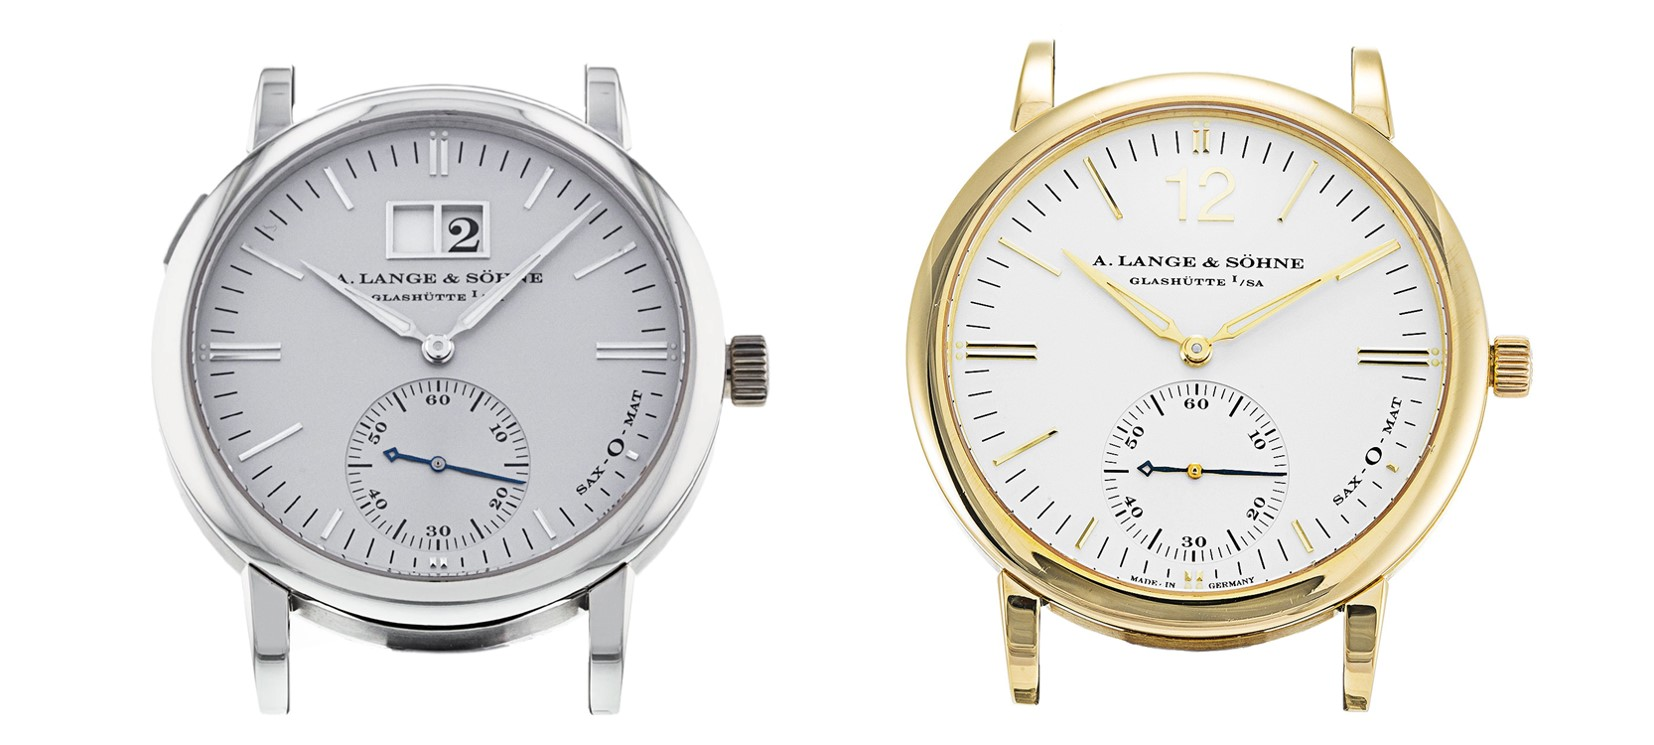 Langematik big date and no date 308.025 platinum and 3012.021 yellow gold comparison